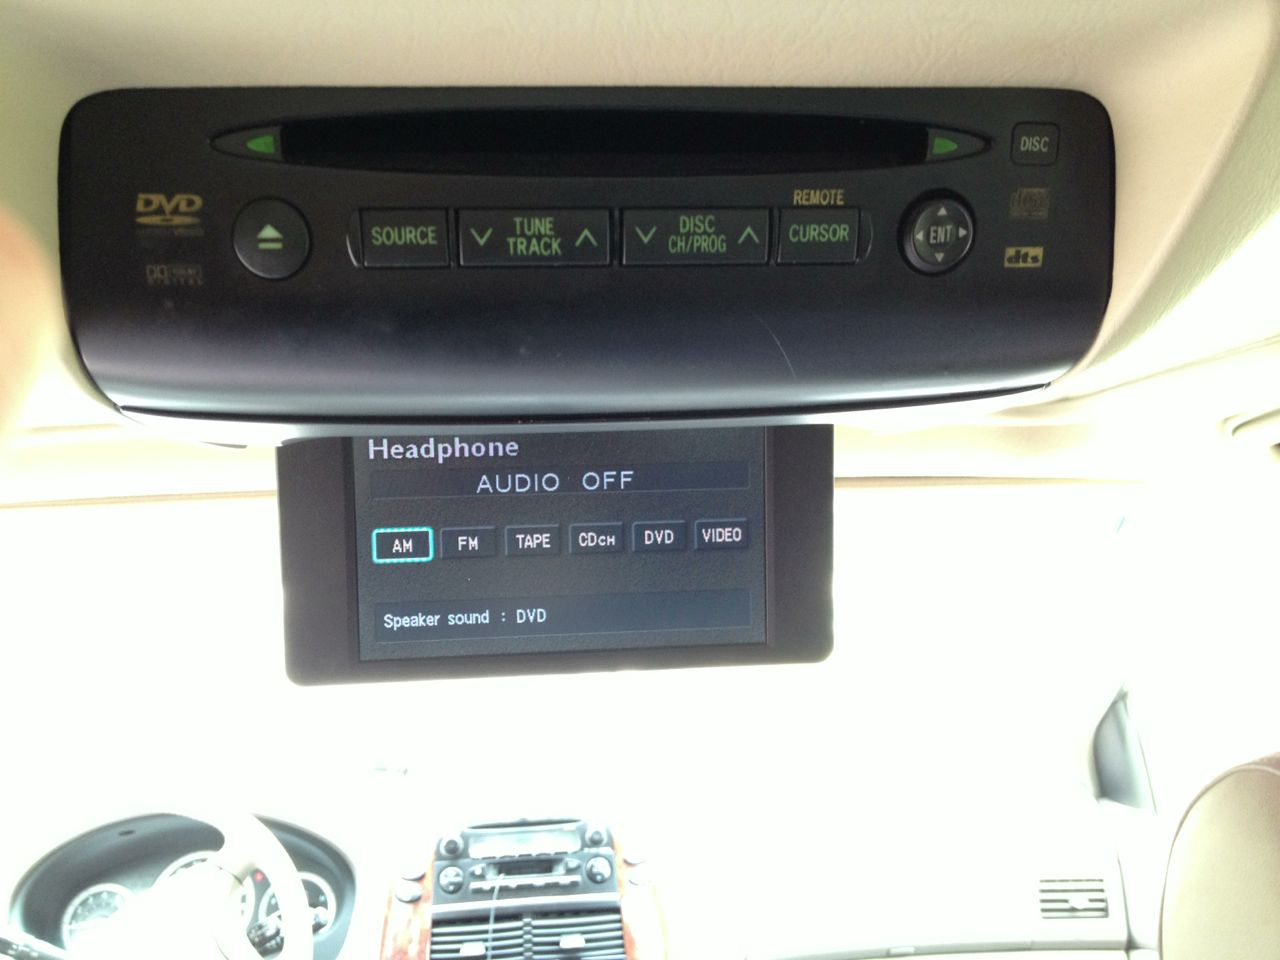 2004 nissan quest dvd player no sound